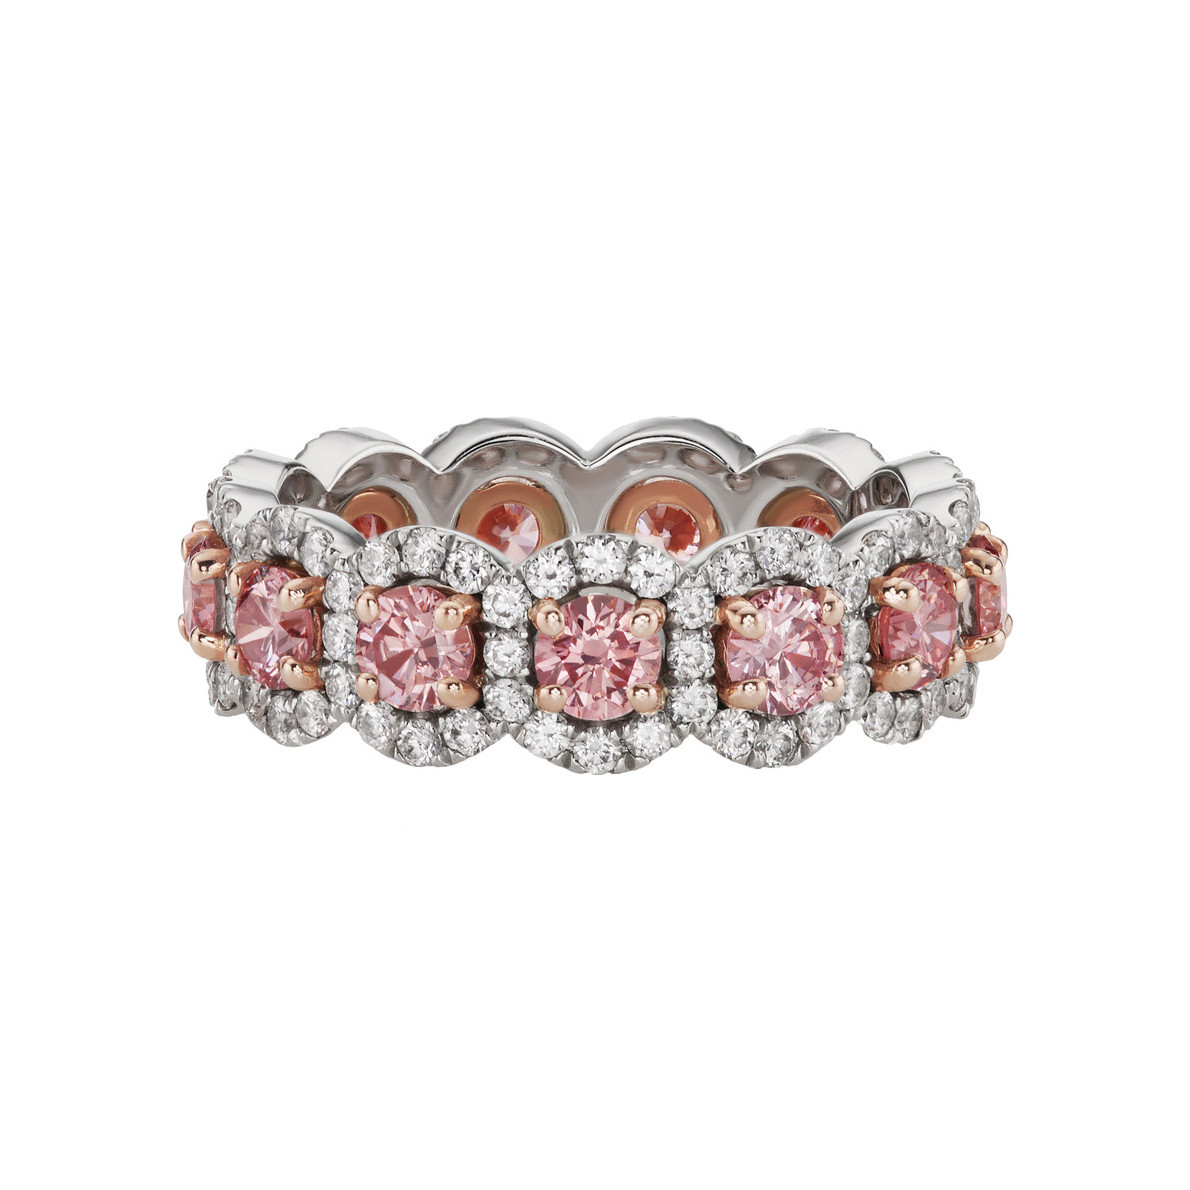 Pink & White Diamond Halo Eternity Band Ring